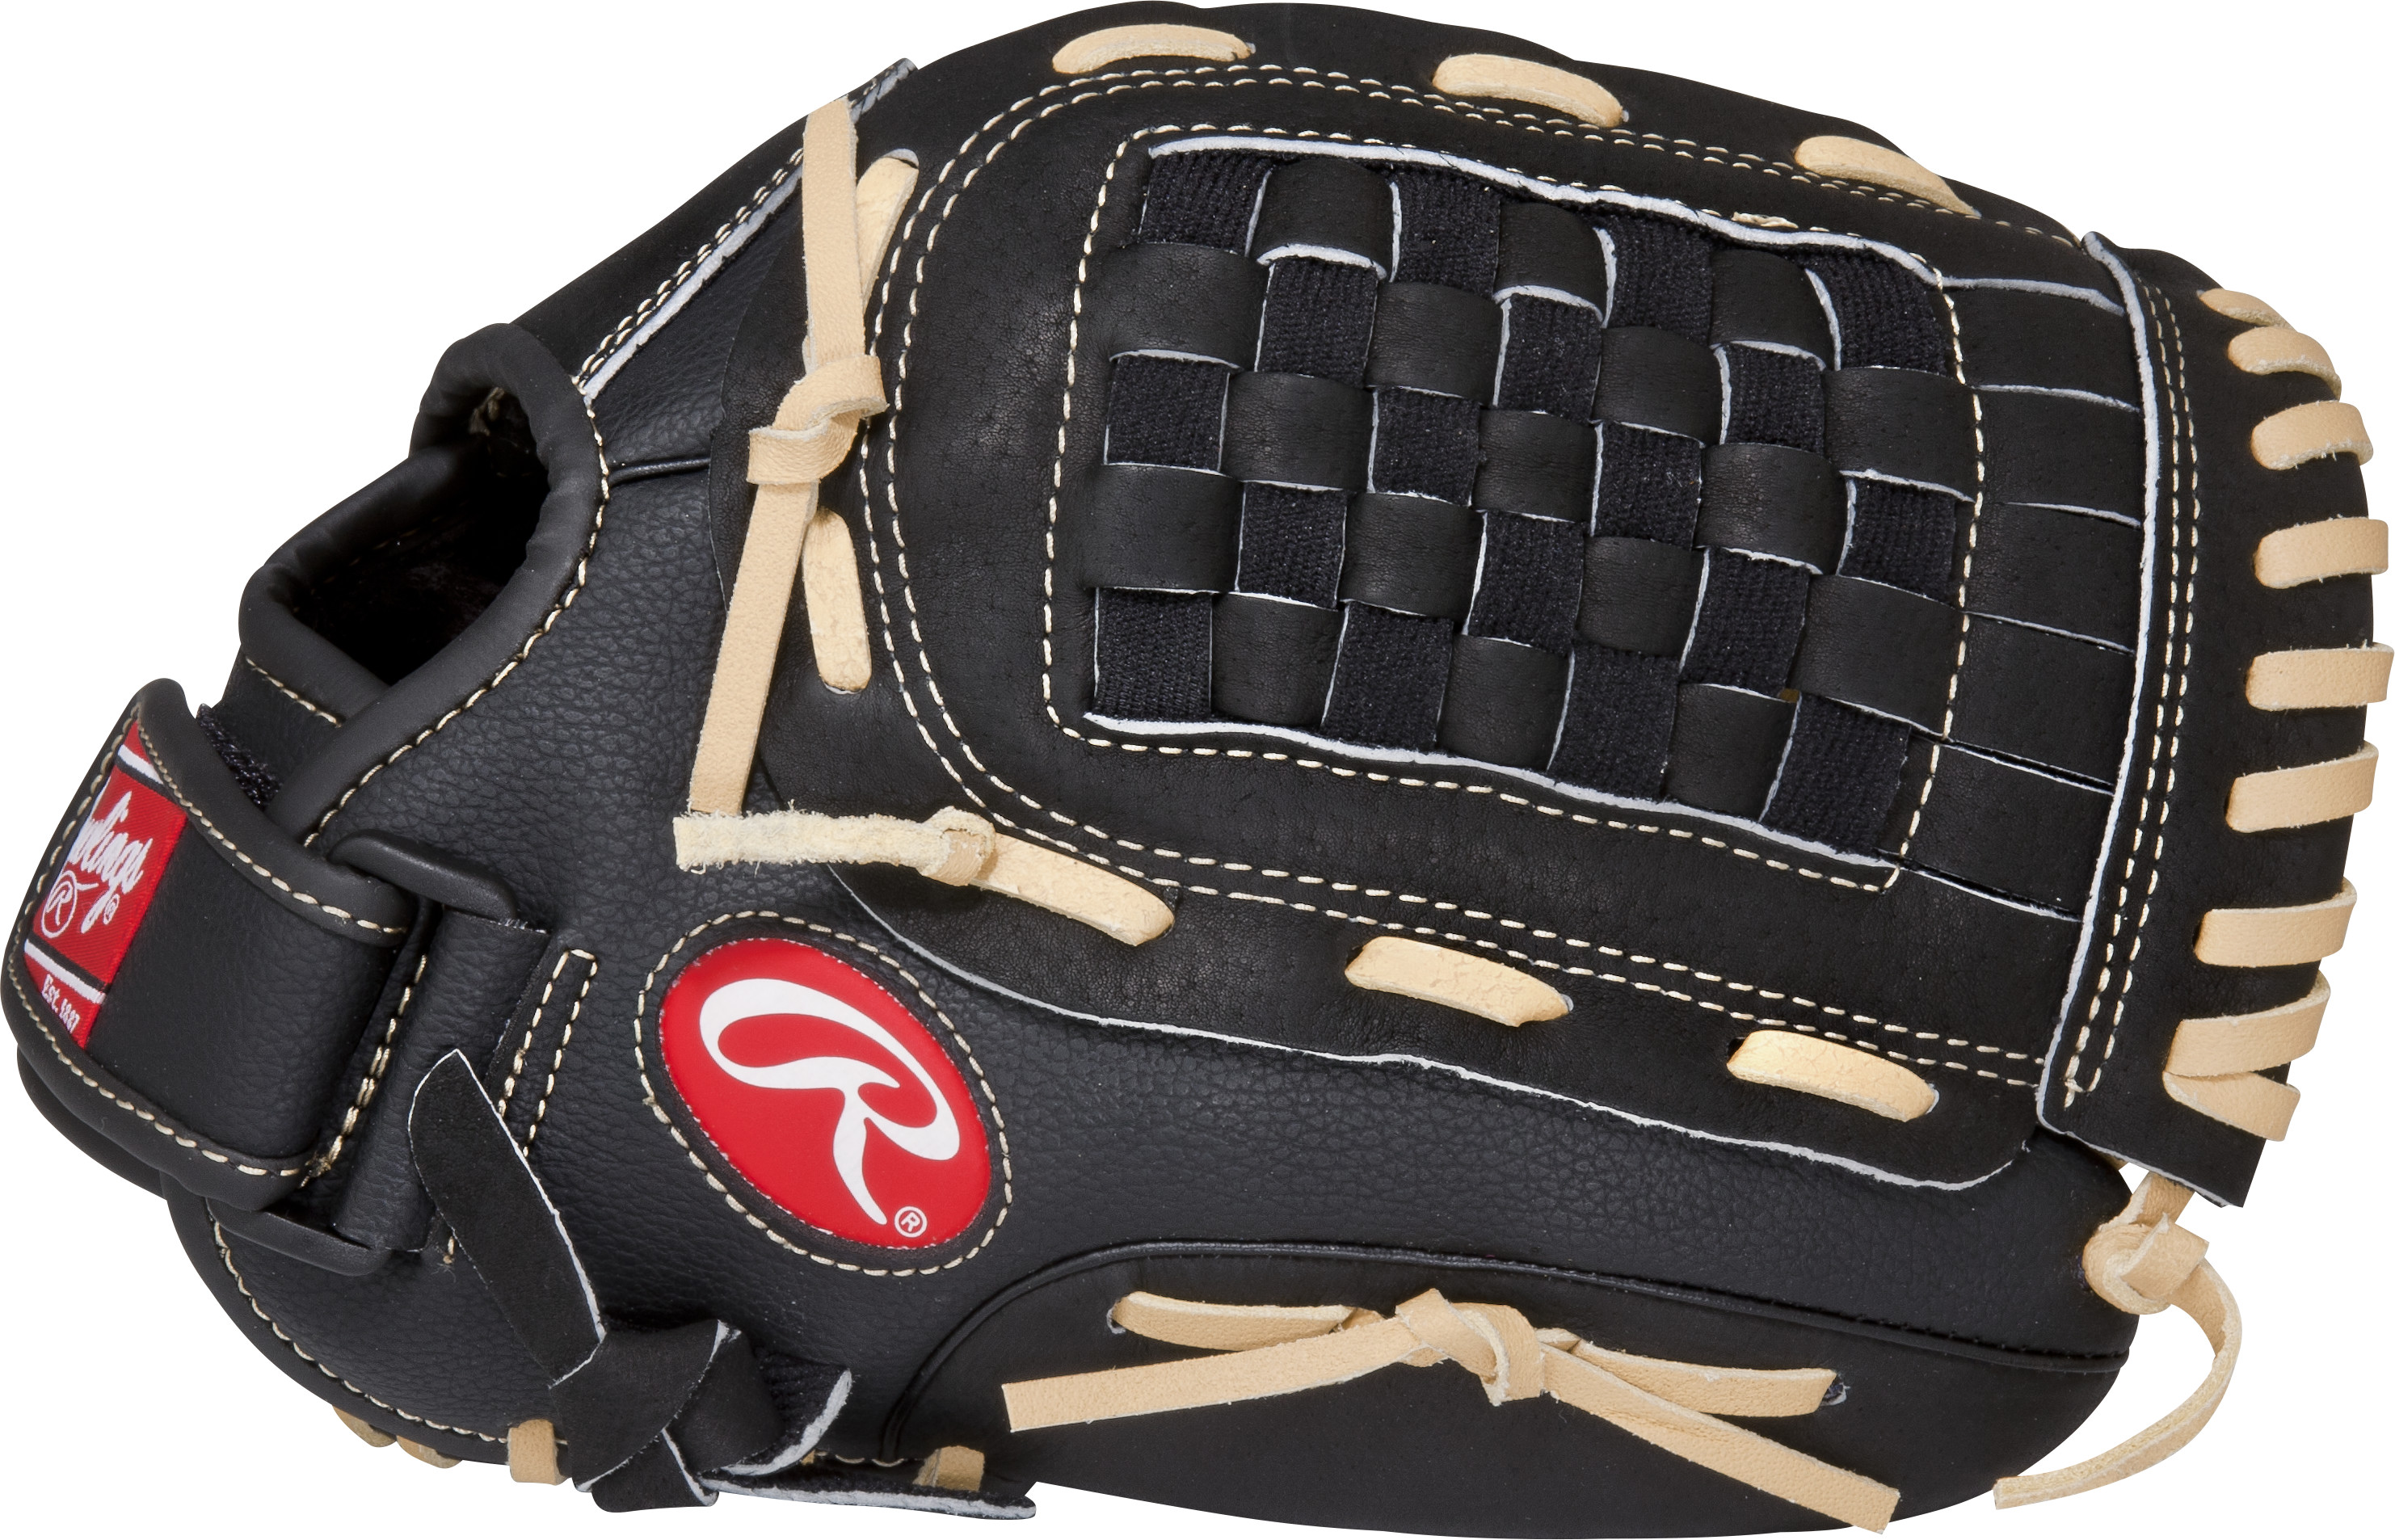 http://www.bestbatdeals.com/images/gloves/rawlings/RSS120C_thumb.jpg